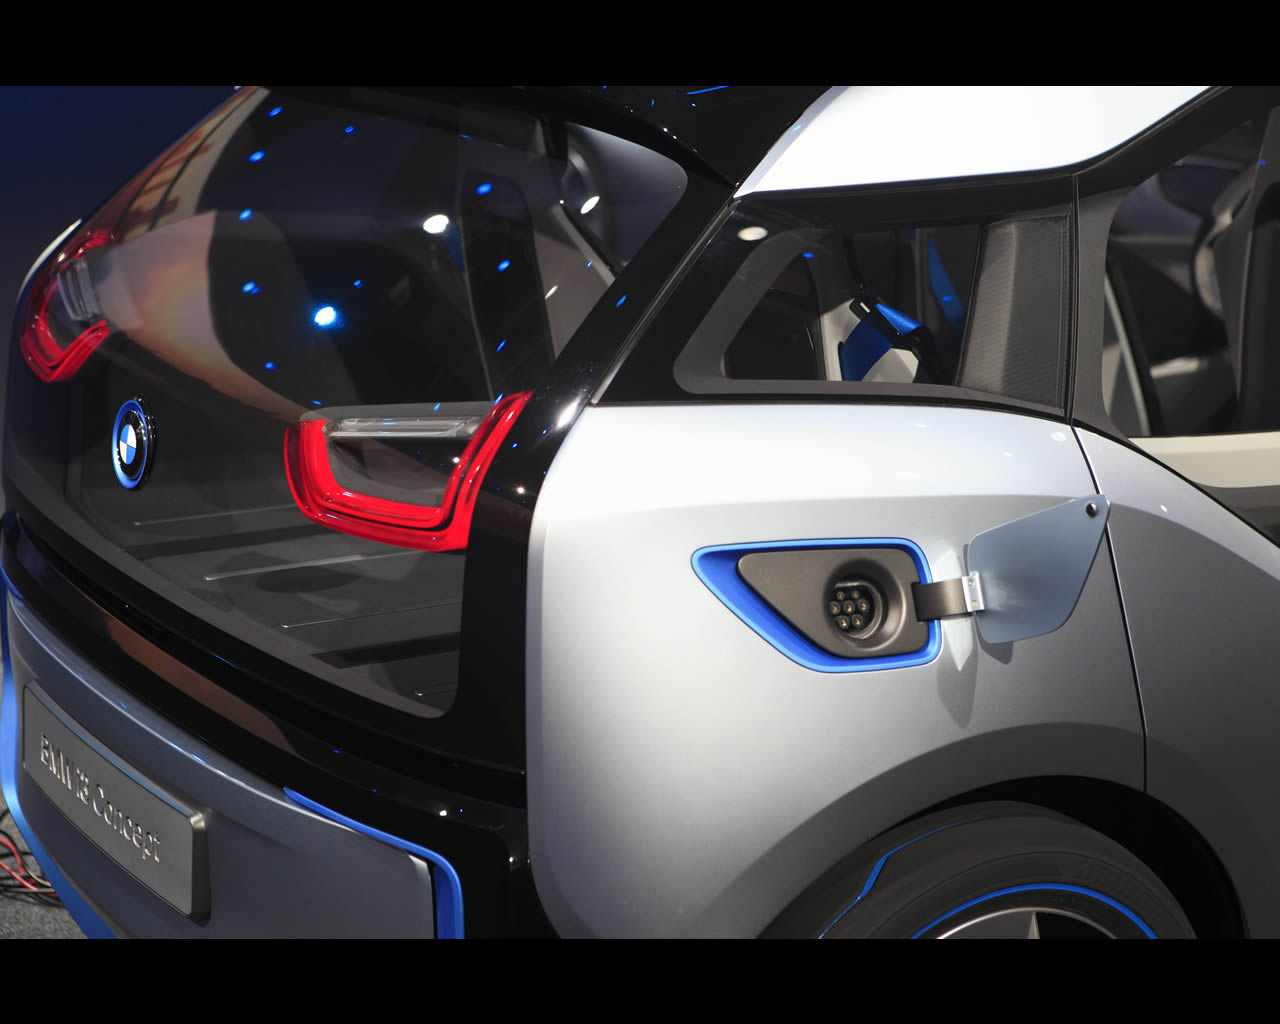 Bmw i3 electric with range extender and i8 plug in full hybrid drive concepts 2011